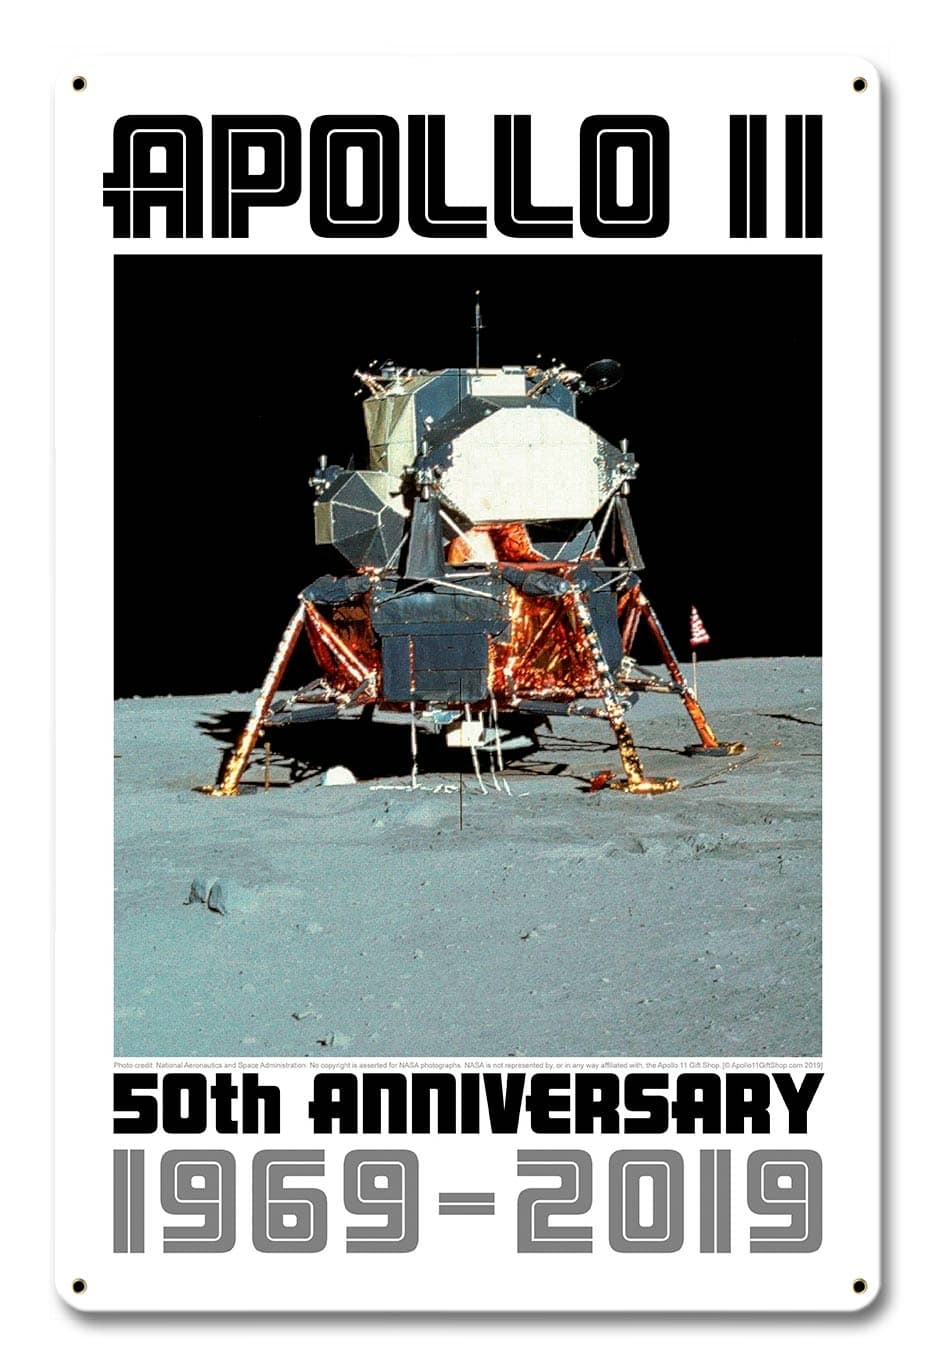 Apollo 11 50Th Anniversary Eagle Lm Lem Lunar Module White Metal Sign Vintage Metal Sign, 12 By 18 by Vintage Sign Company item number: AGS038